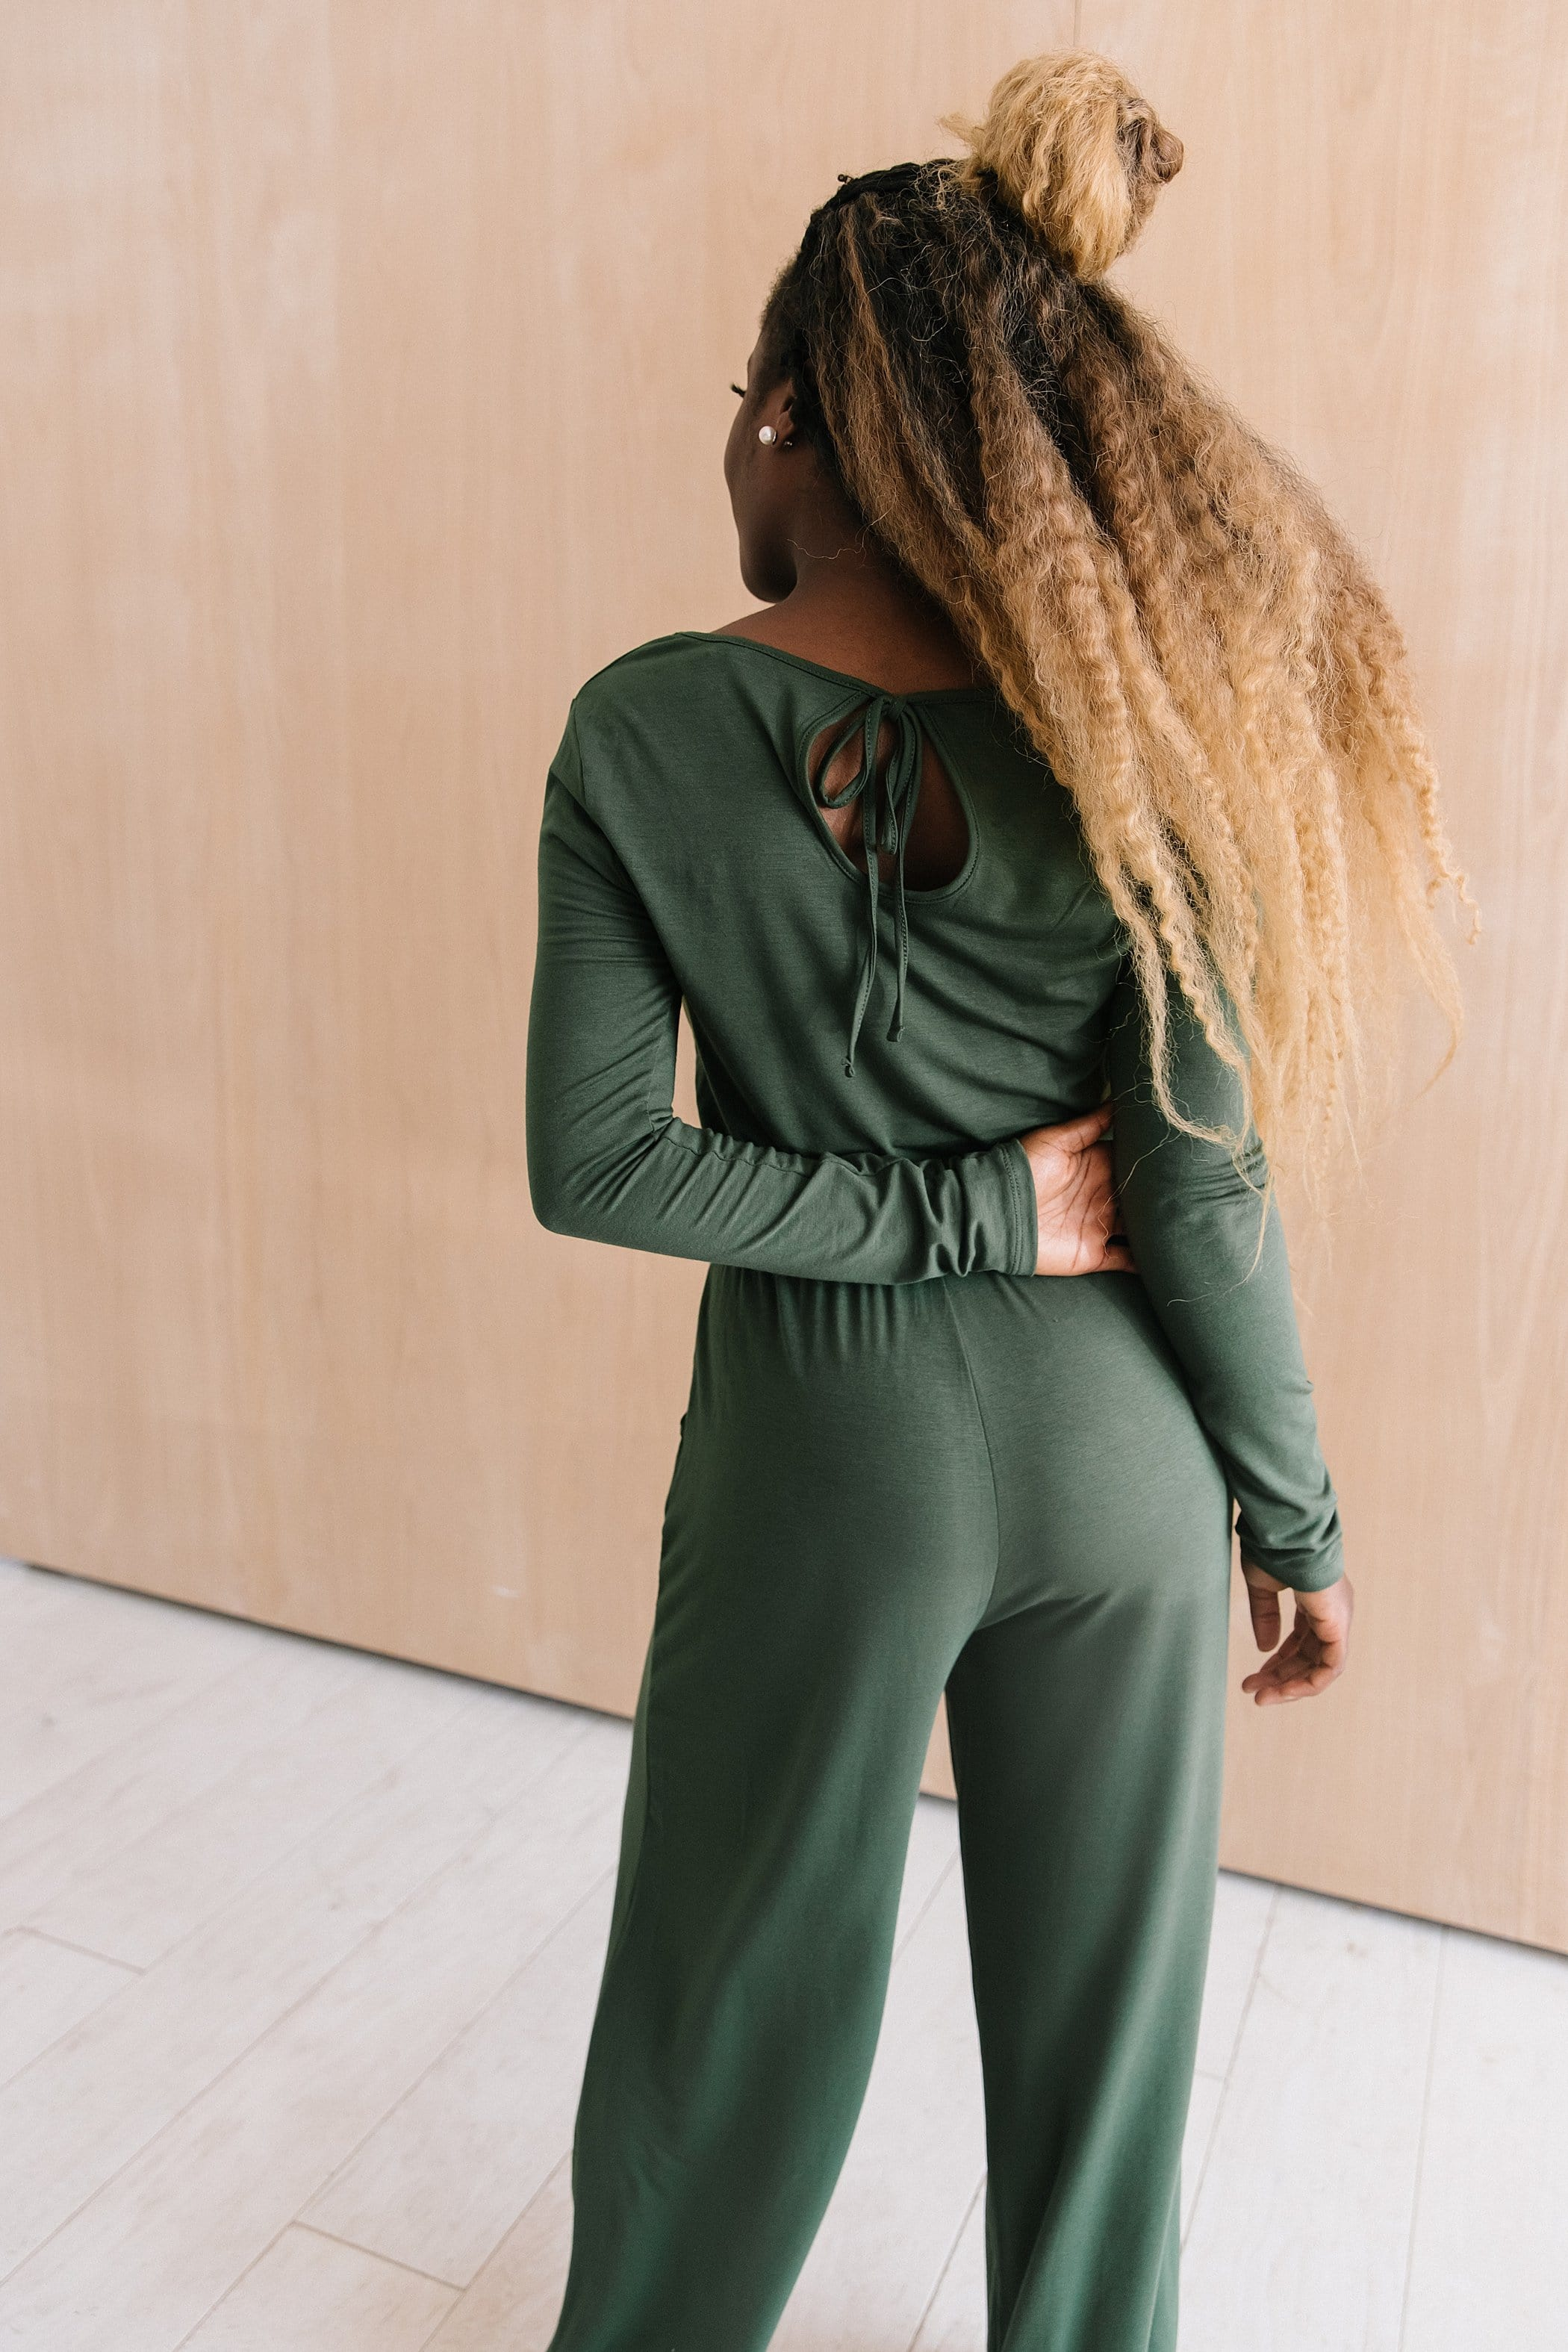 The Montgomery Long Sleeve Romper in Black and Green